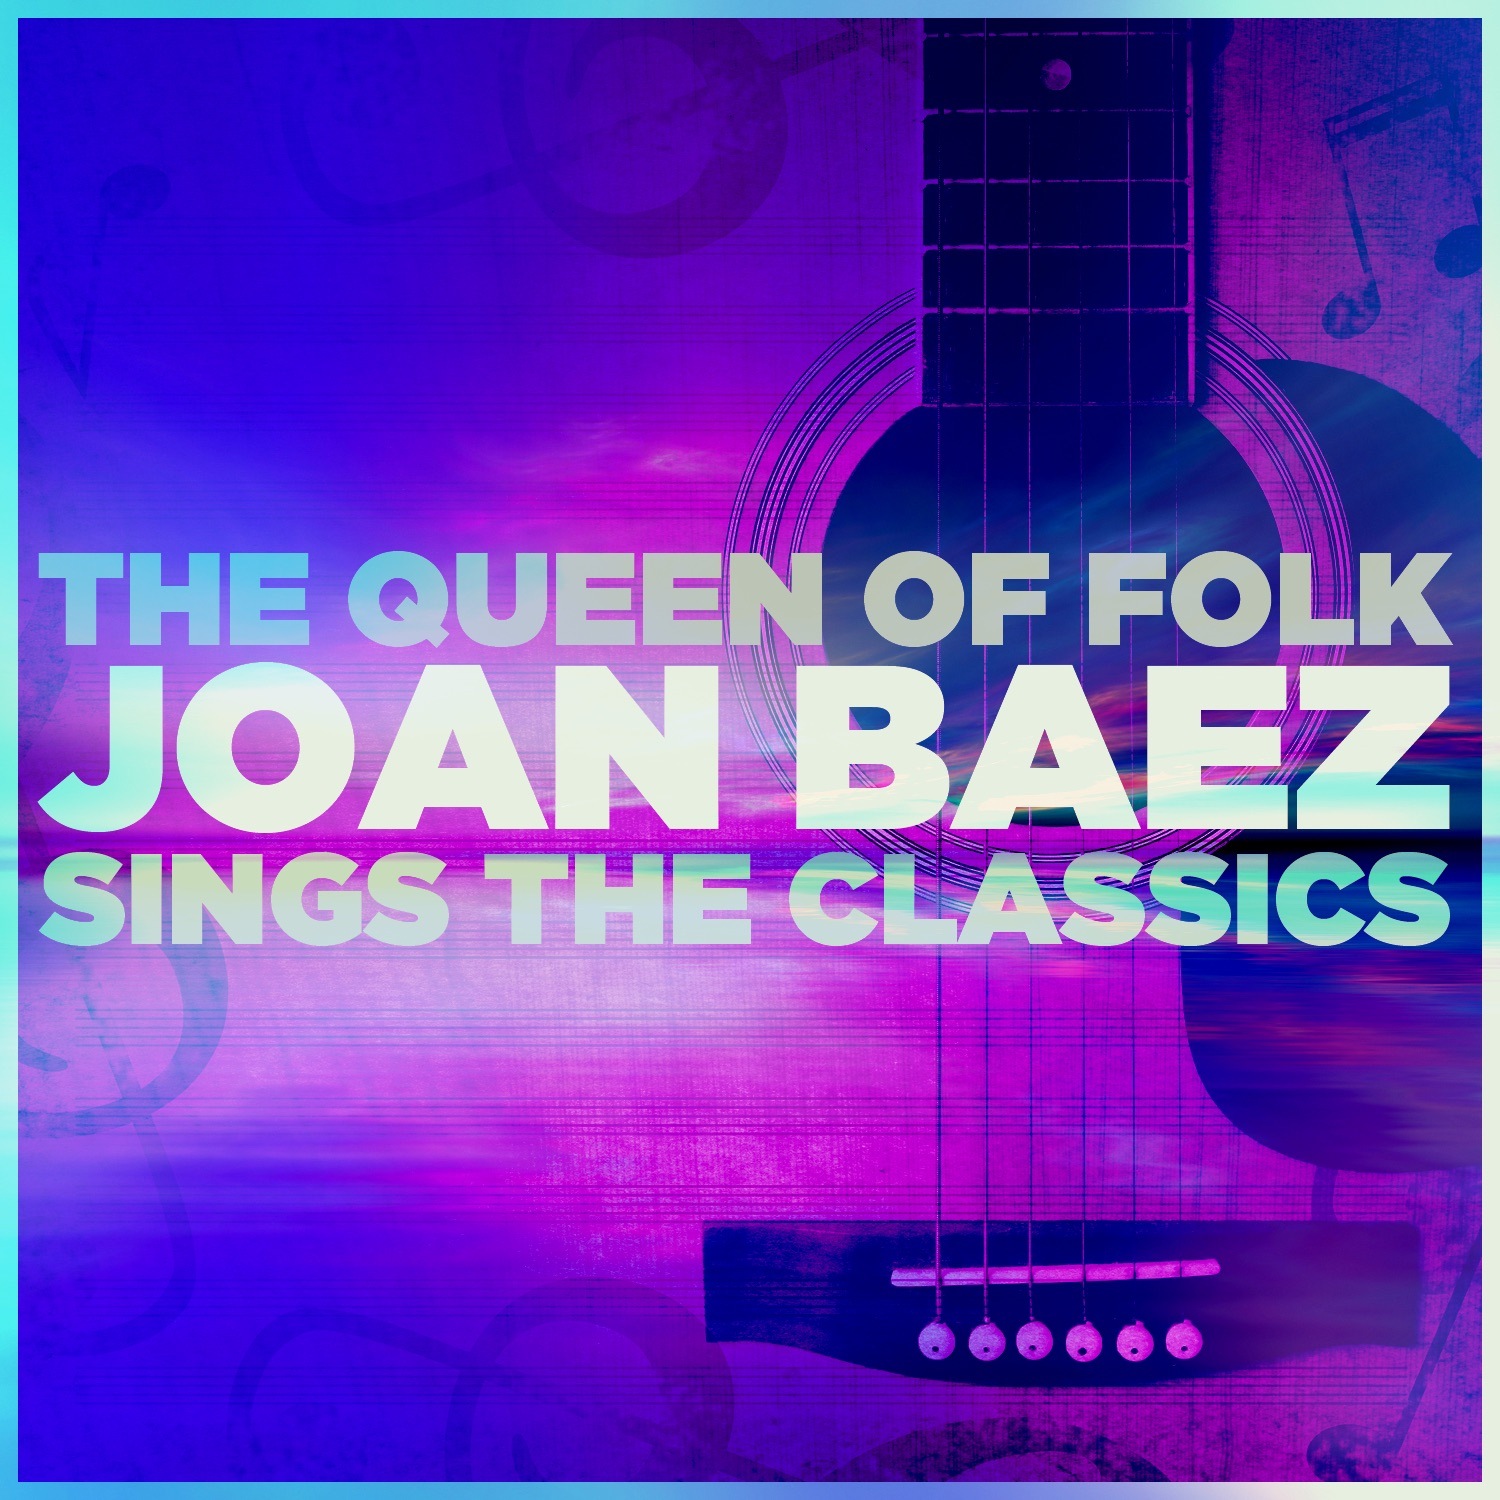 The Queen of Folk: Joan Baez Sings The Classics